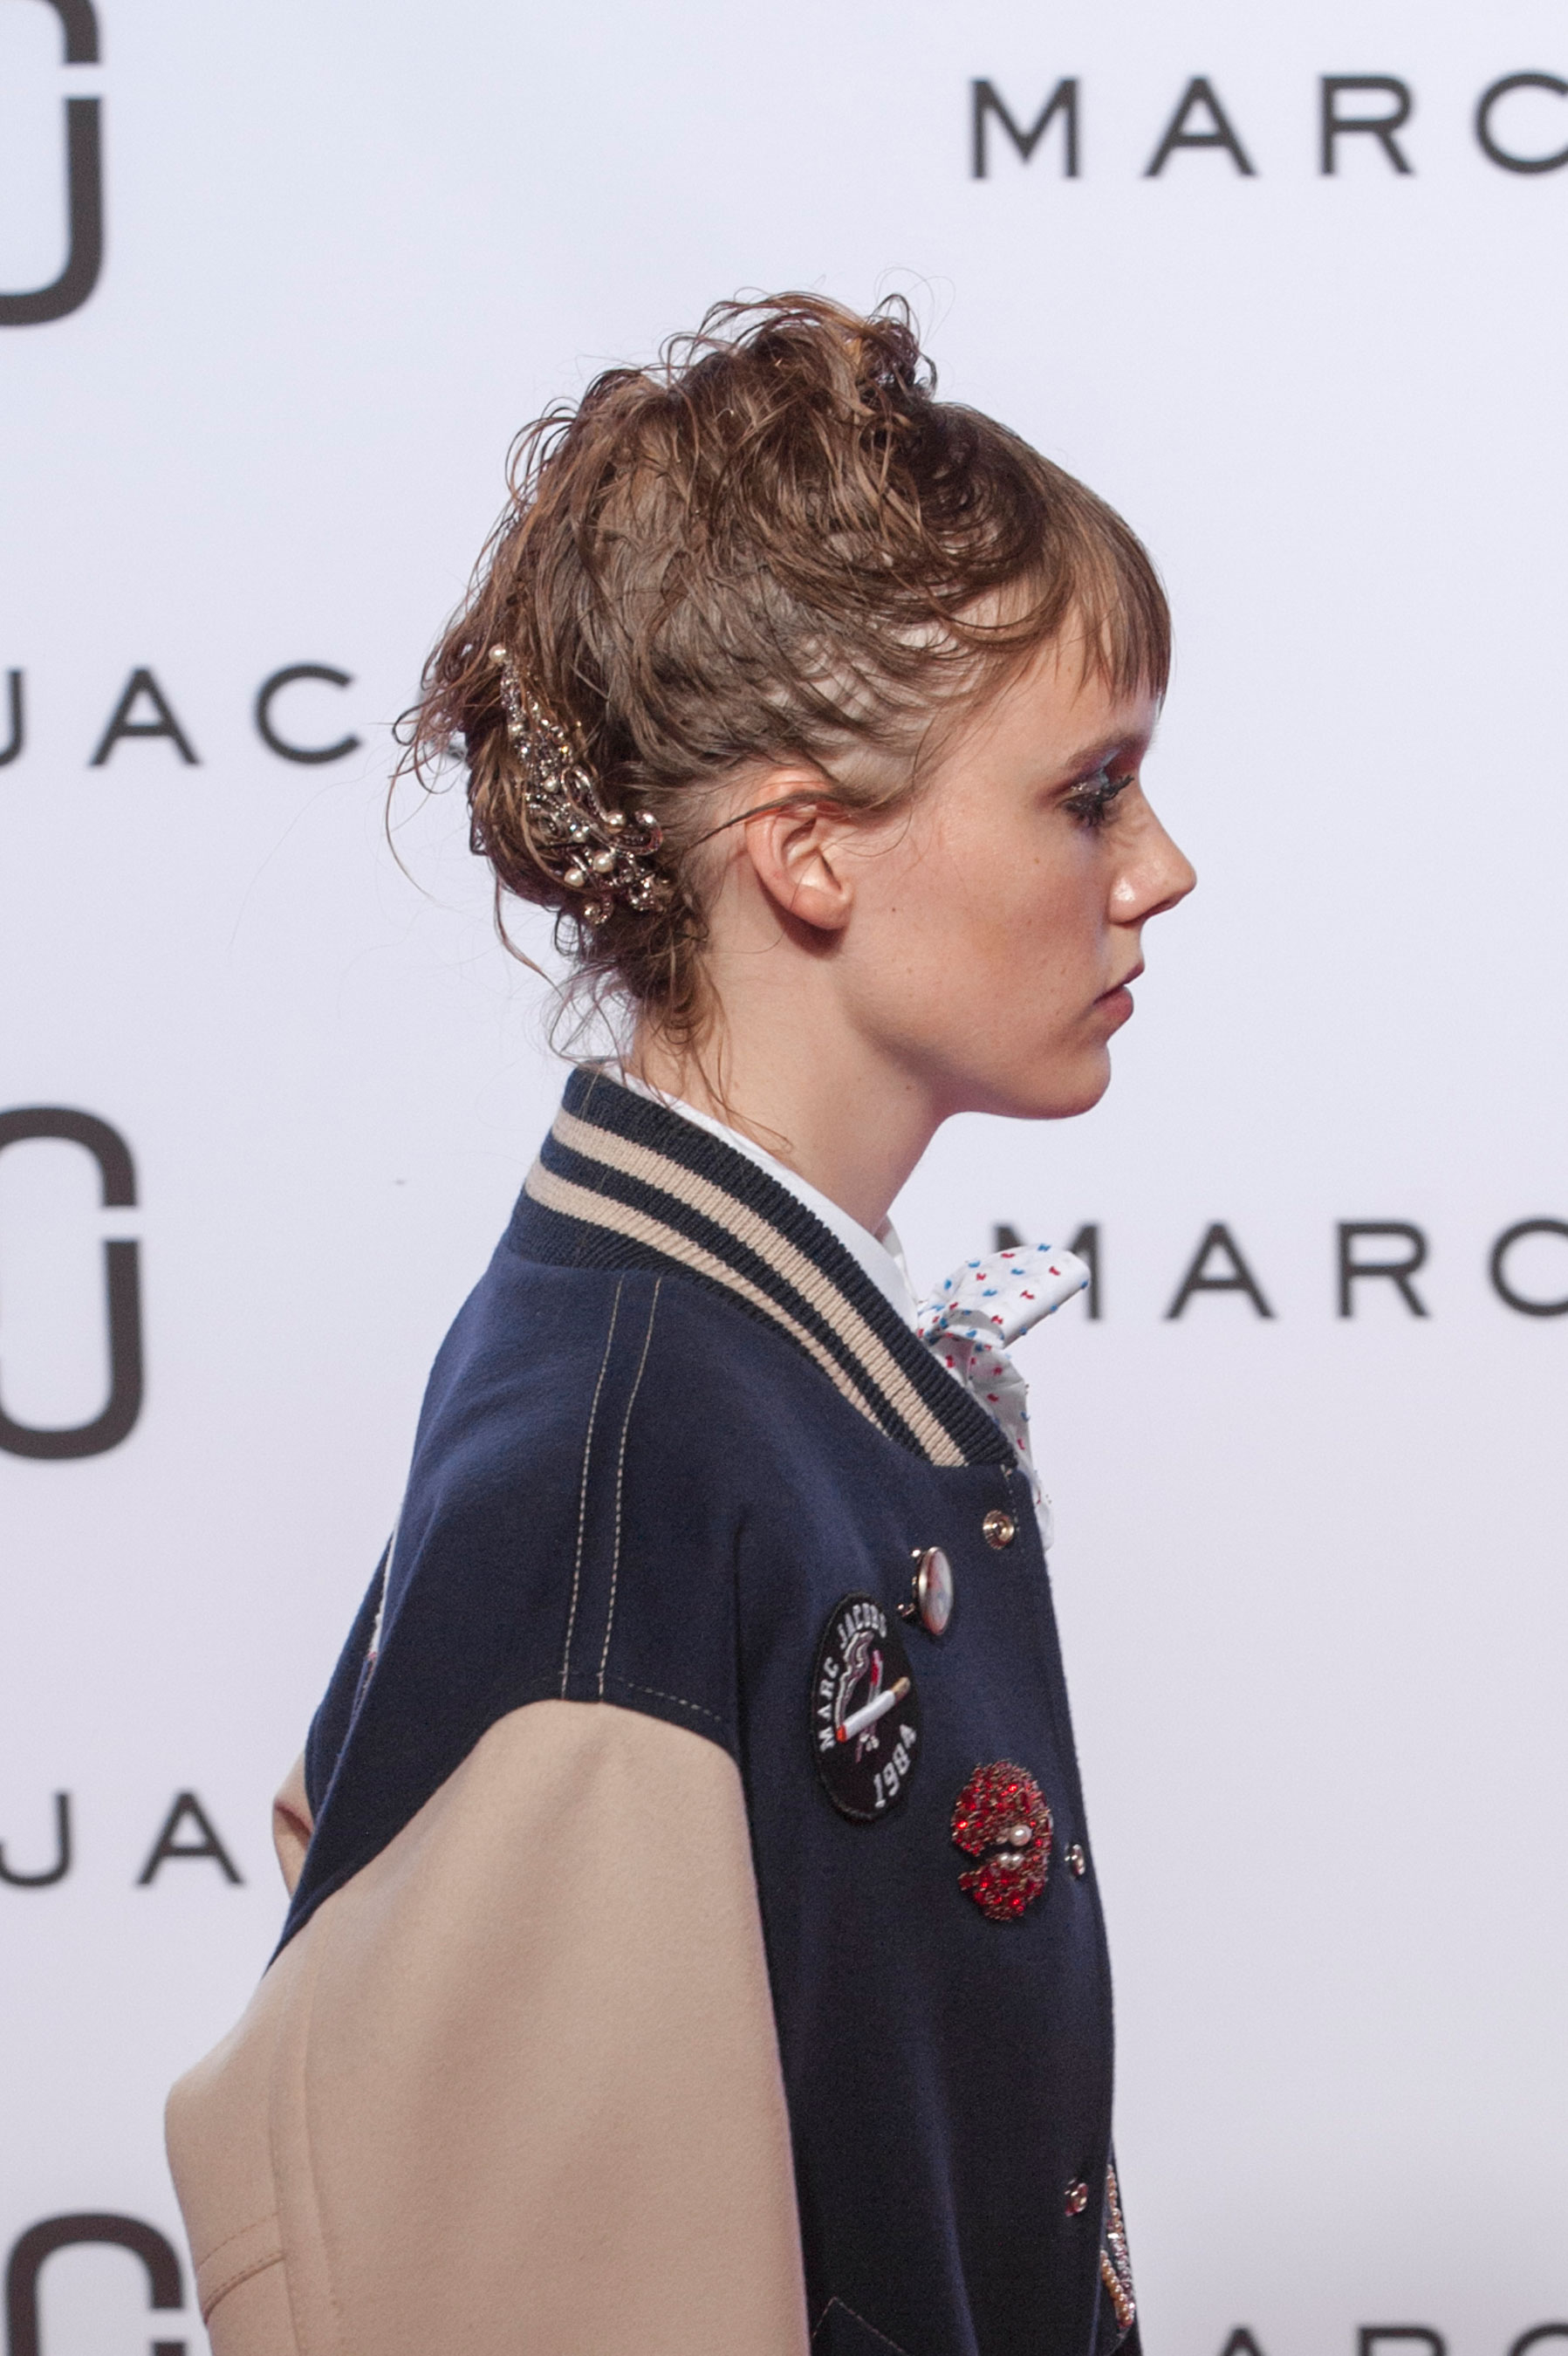 marc-jacobs-spring-2016-runway-beauty-fashion-show-the-impression-08